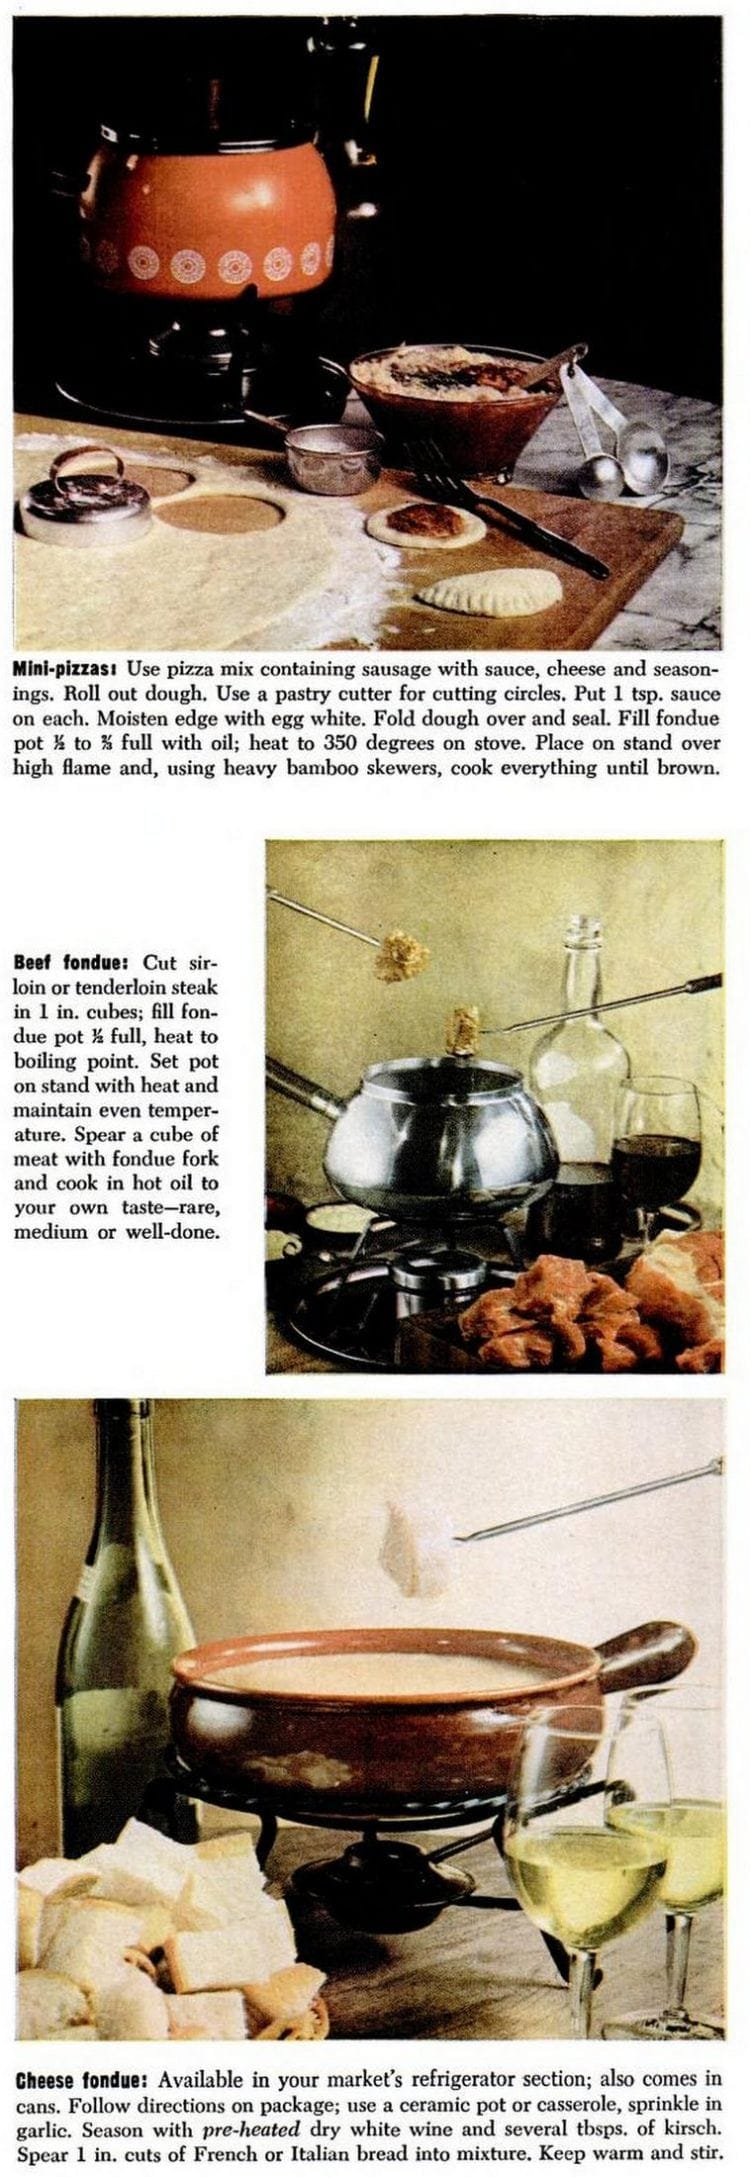 Retro fondue from 1969